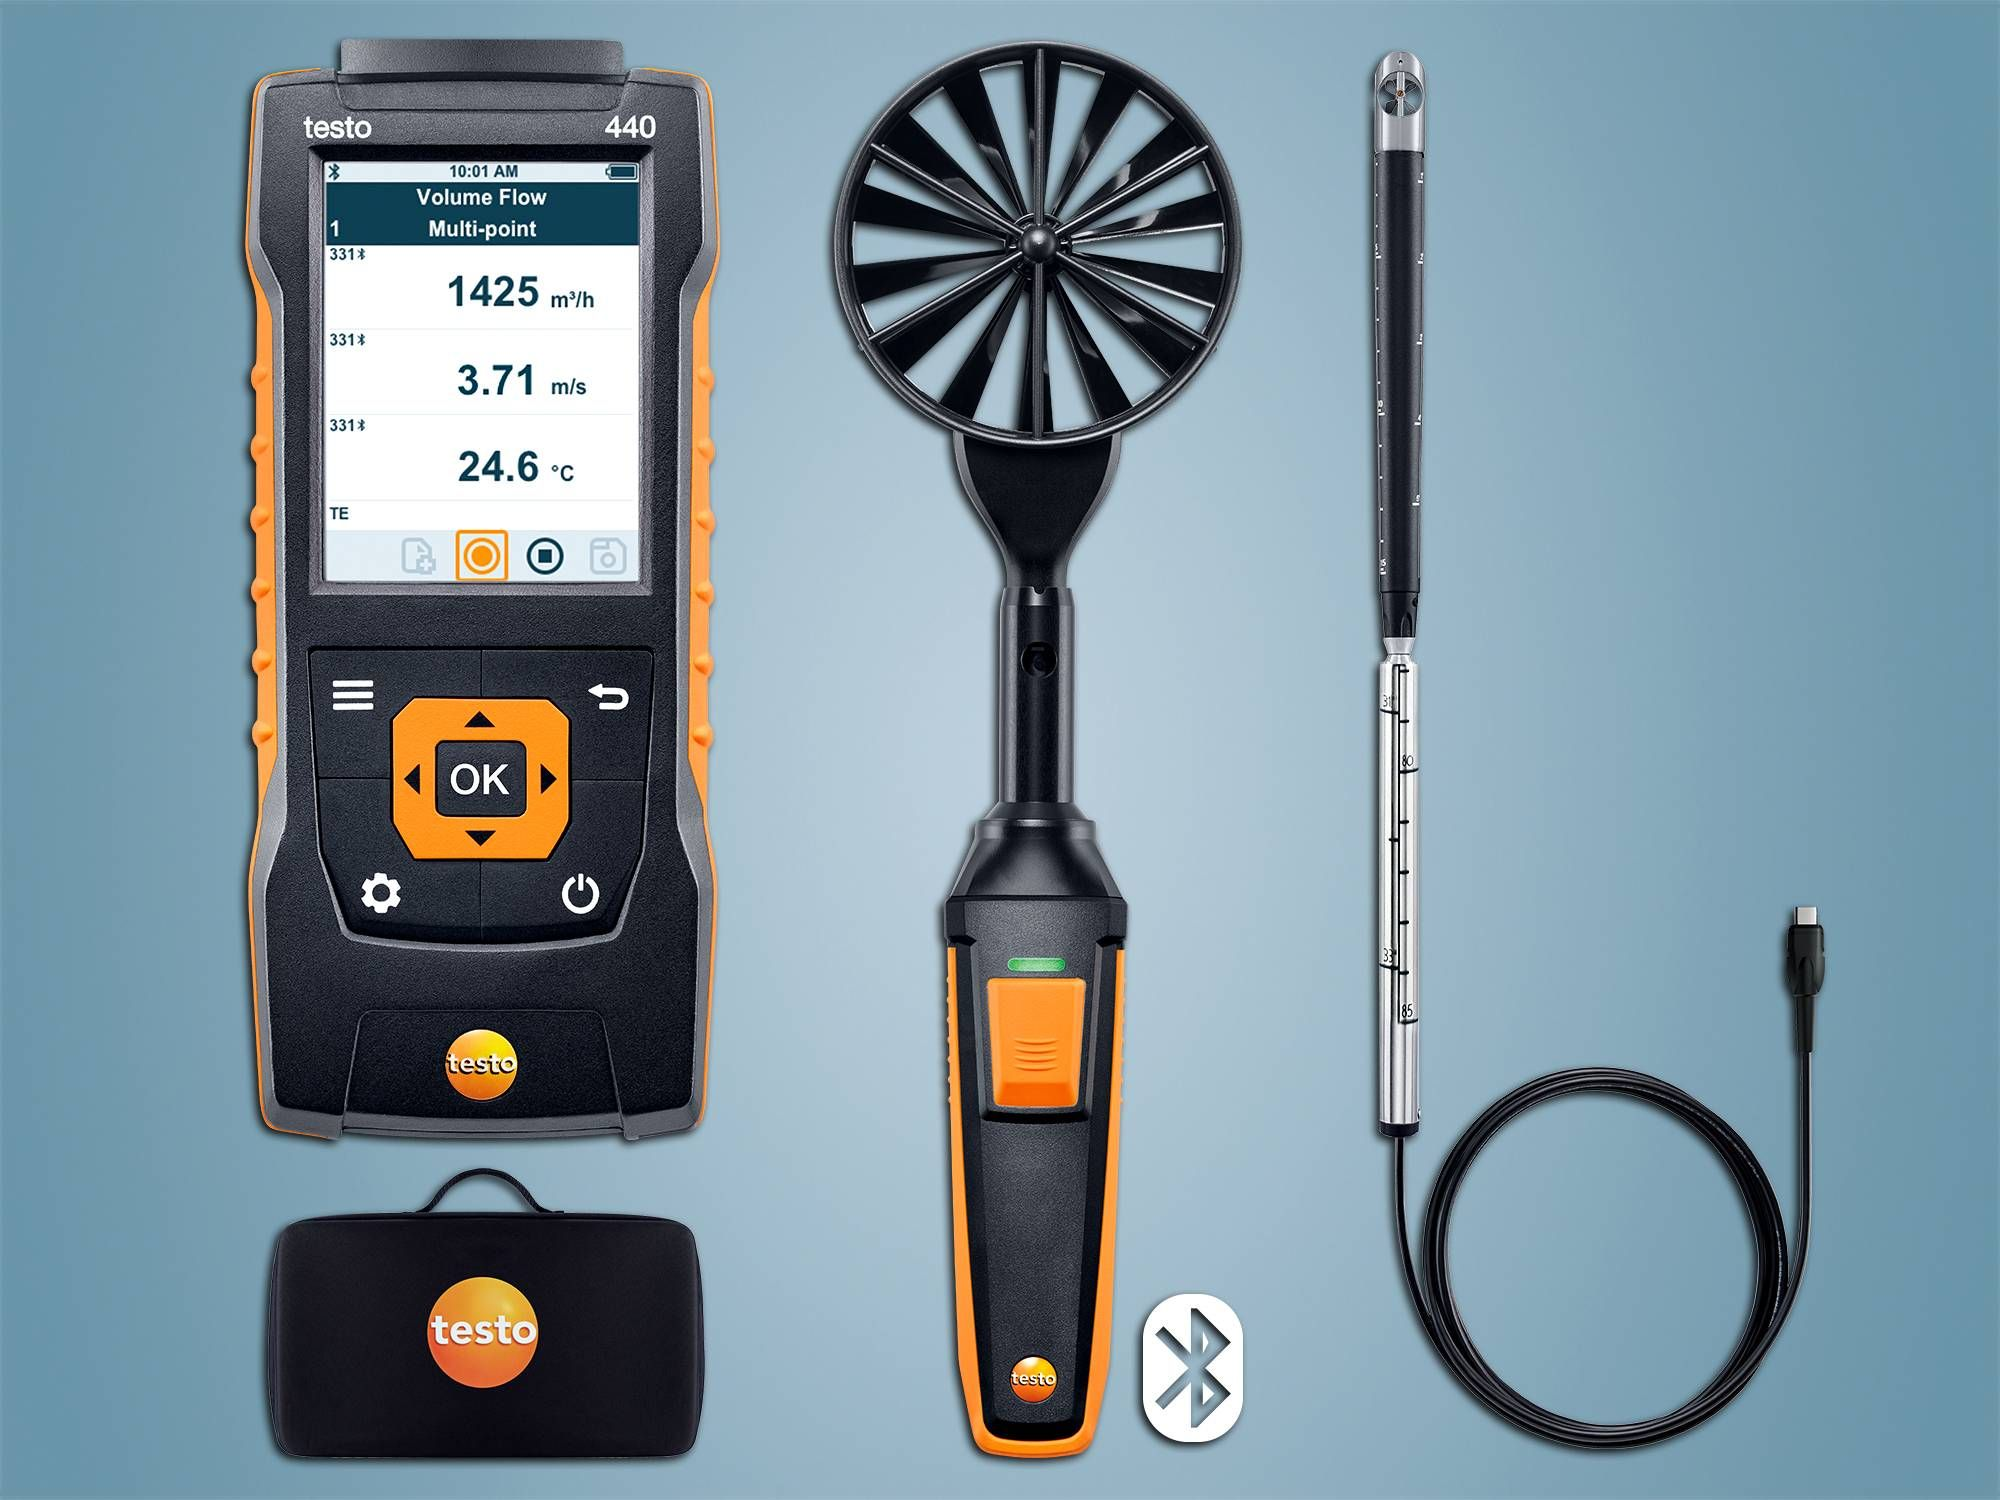 testo 440 stromings-CombiSet 2 met Bluetooth